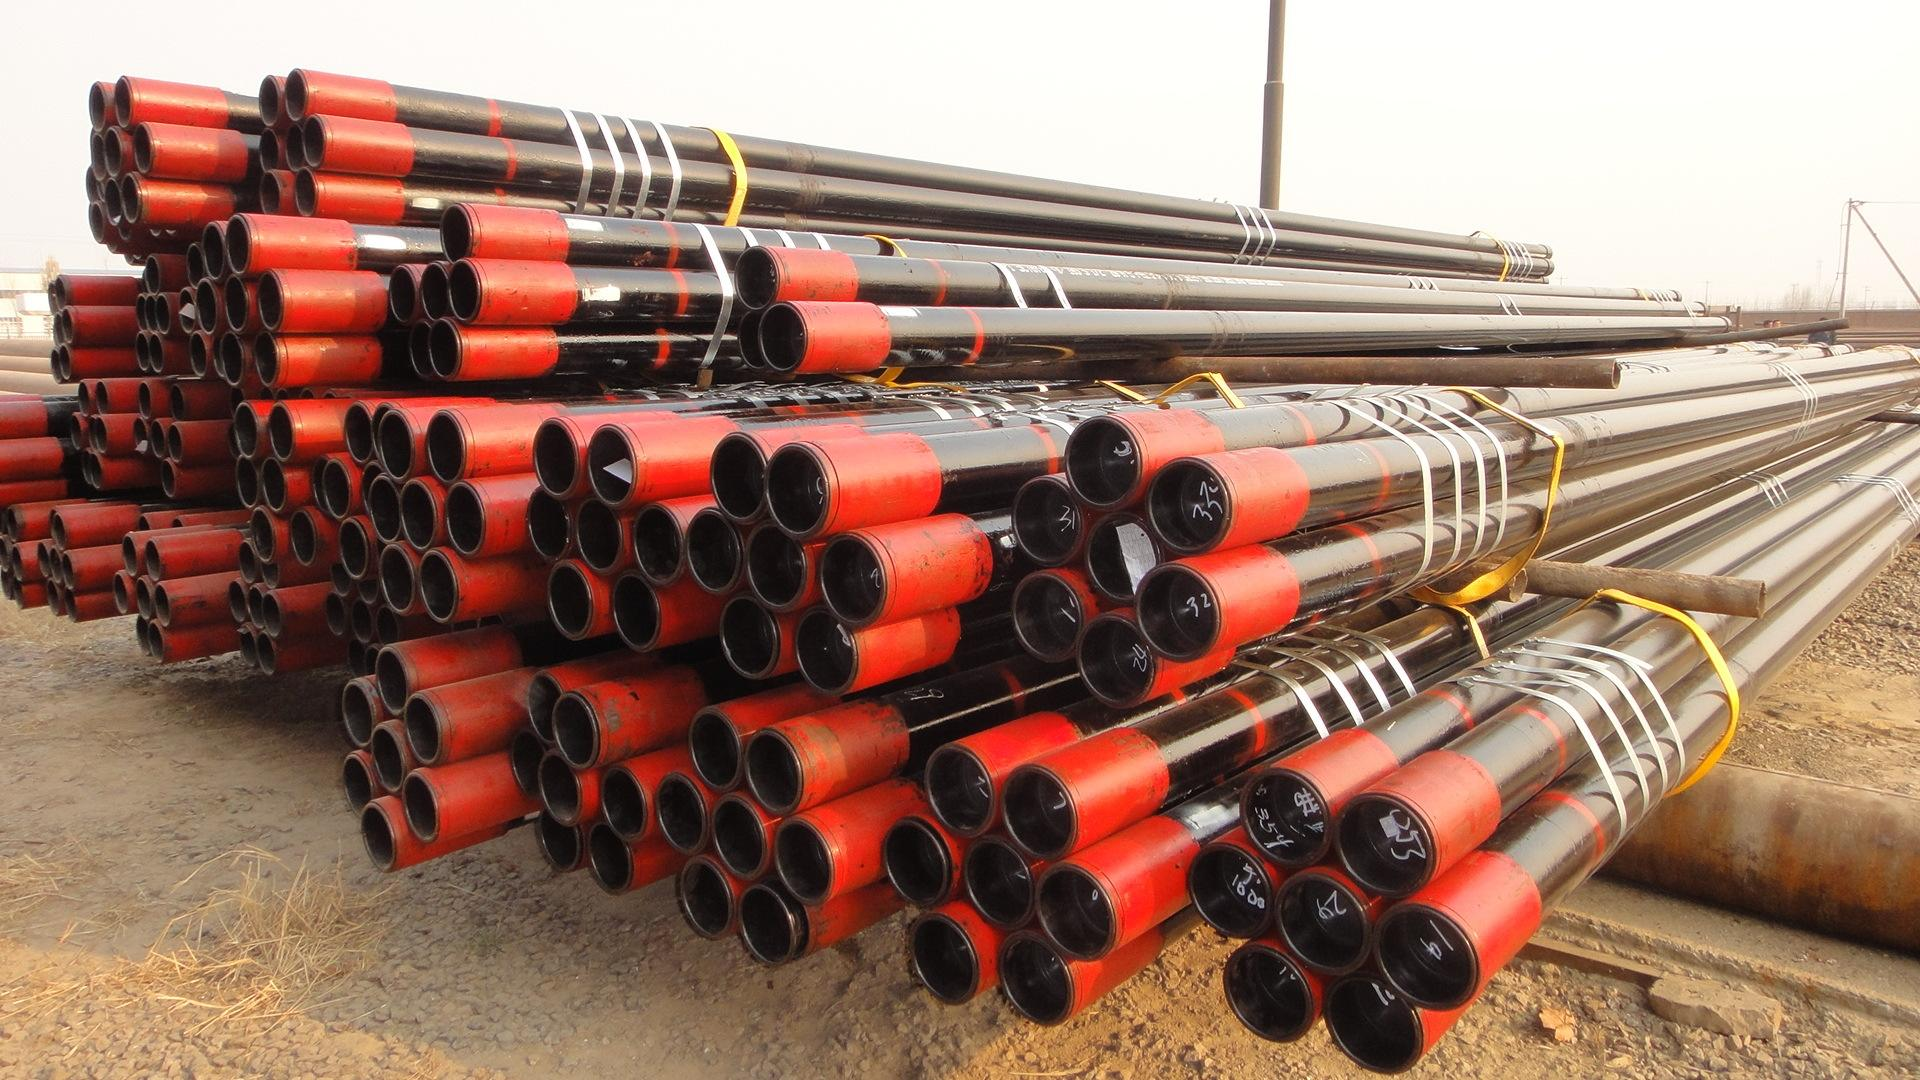 Analysis of Oil Well Casing Technology and Welding Process